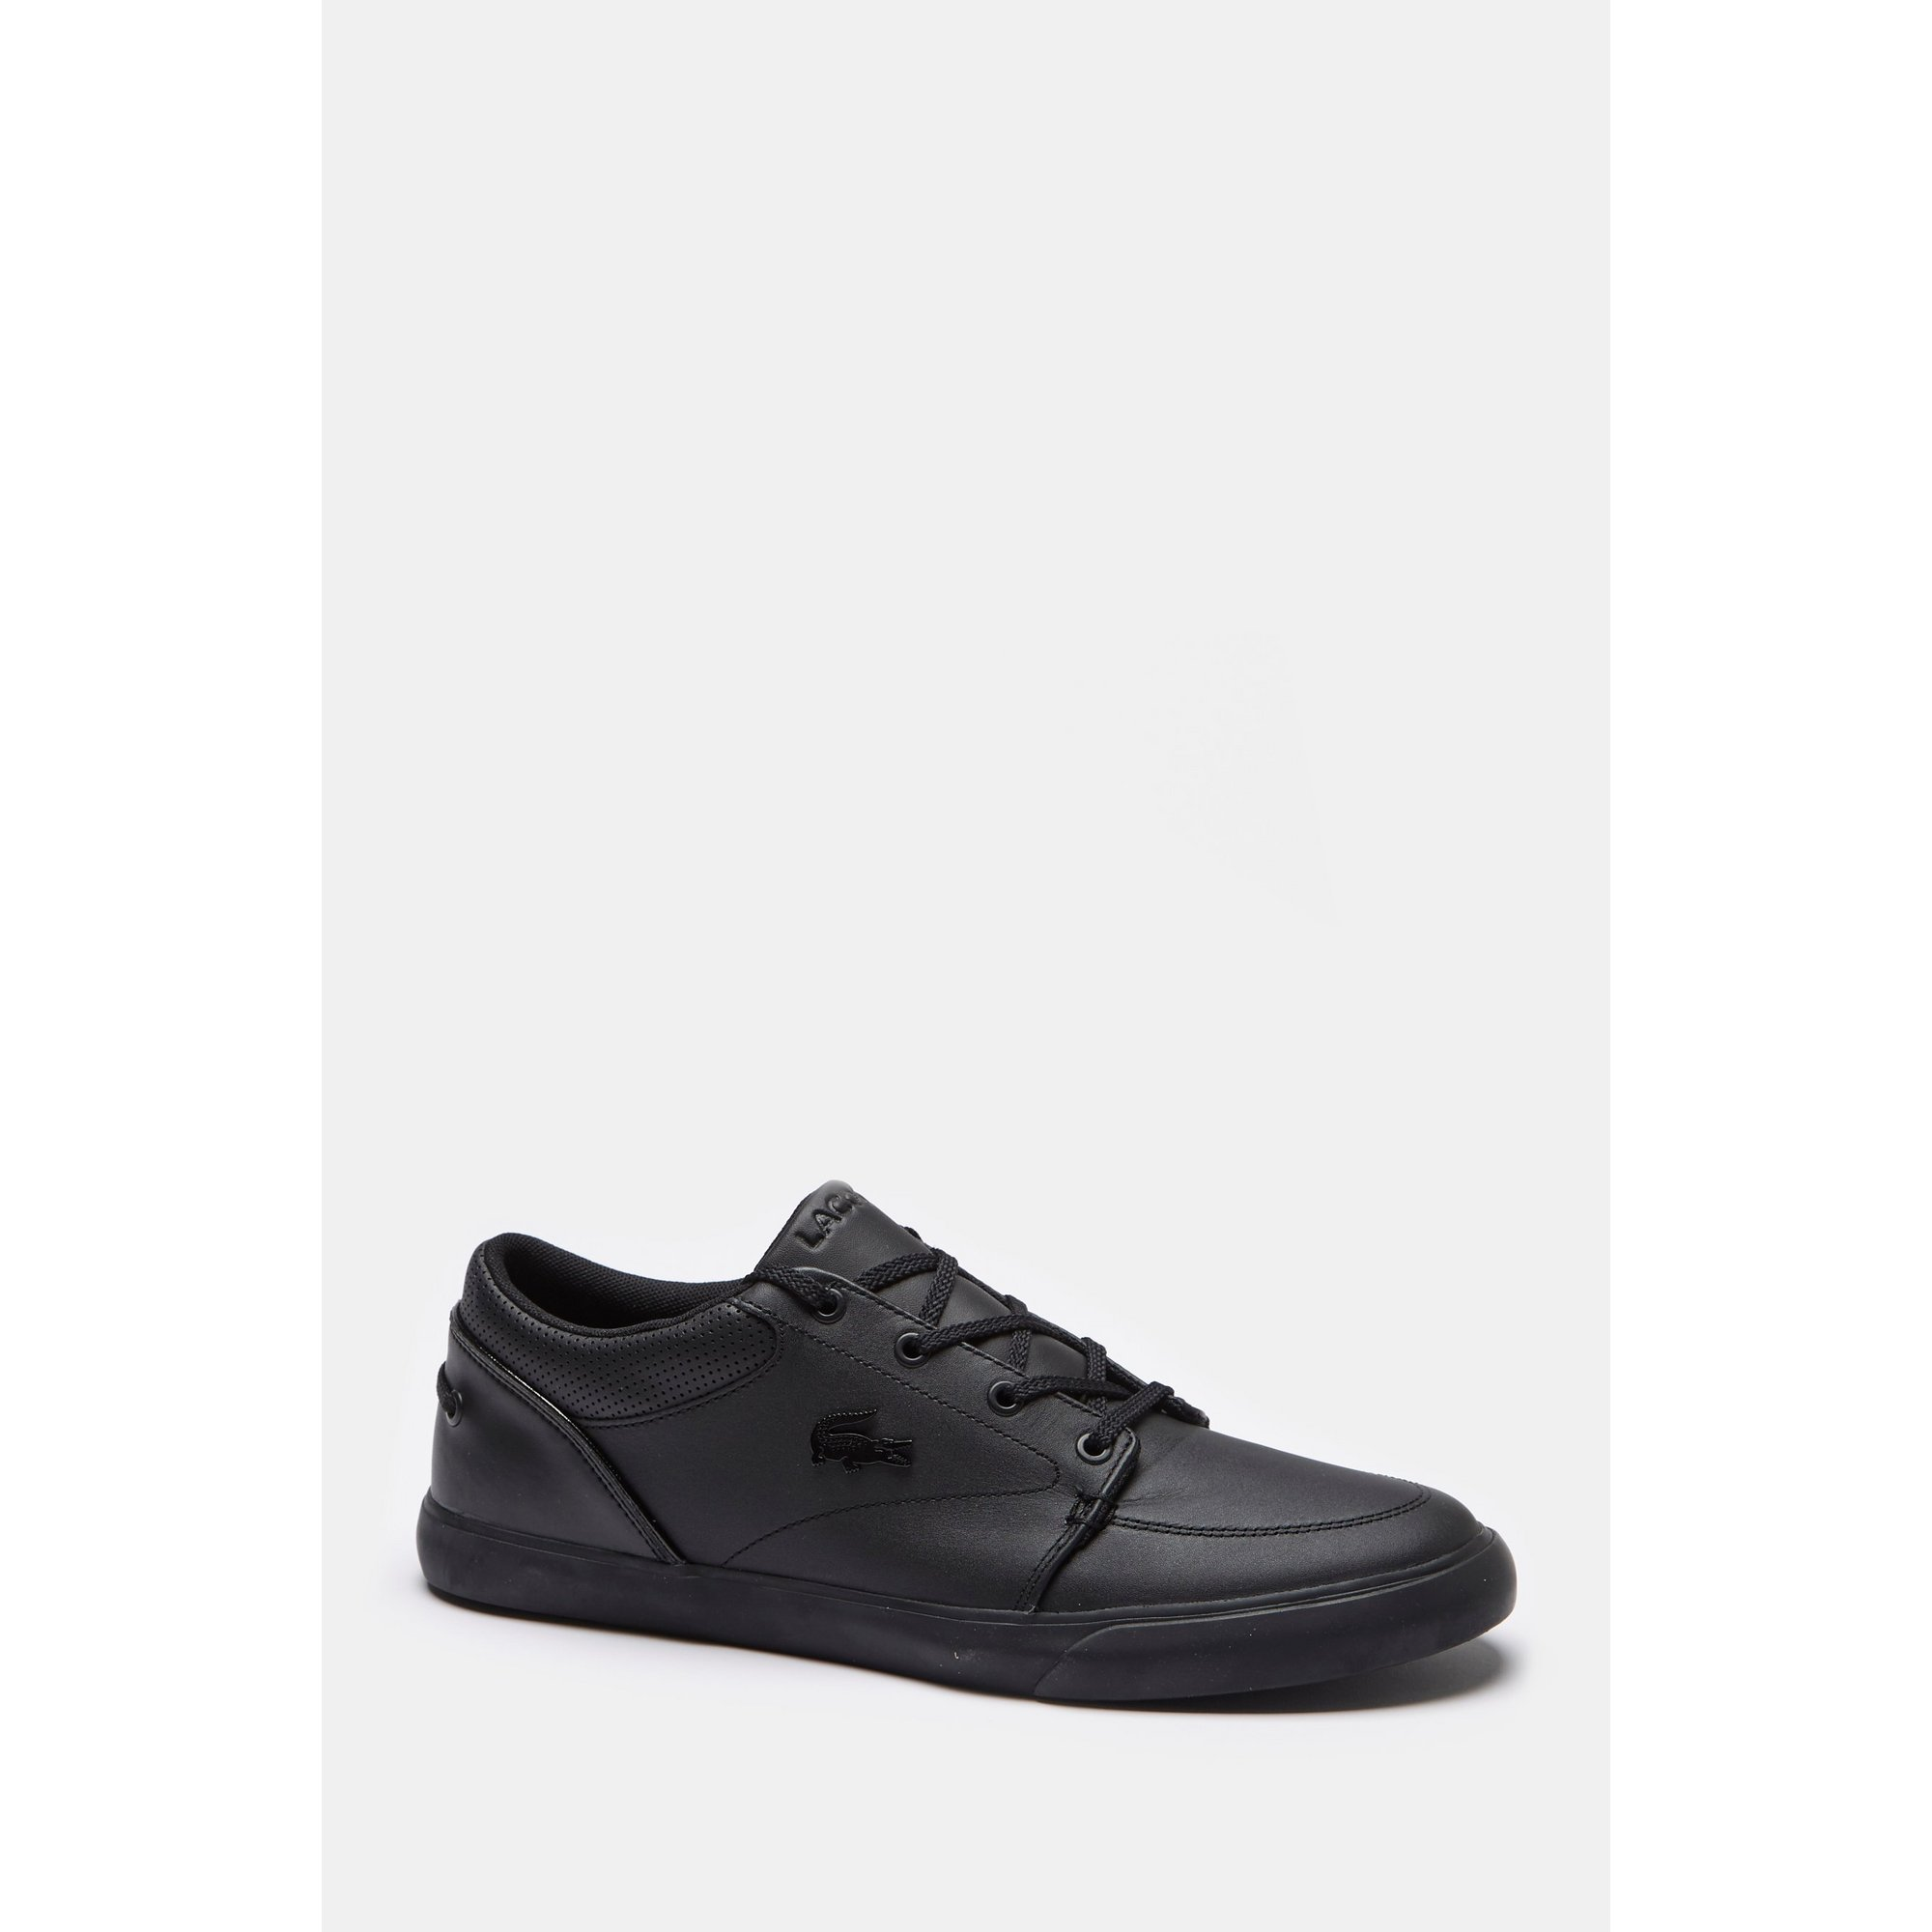 Image of Lacoste Bayliss Trainers